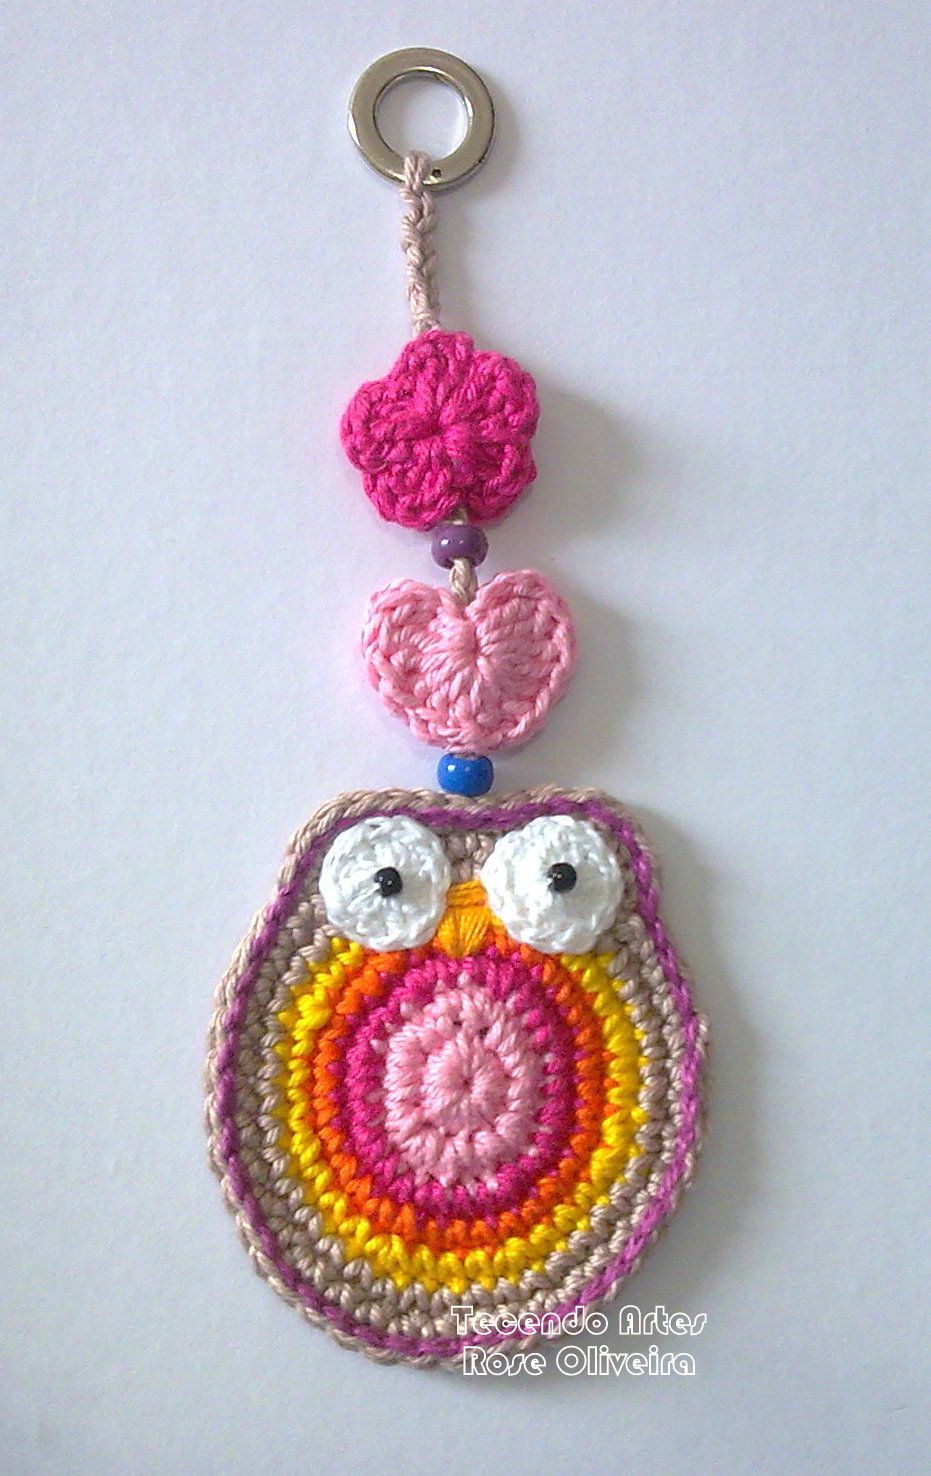 Cool Crochet Patterns : coruja - enfeite Cool Crochet Ideas and Patterns Pinterest